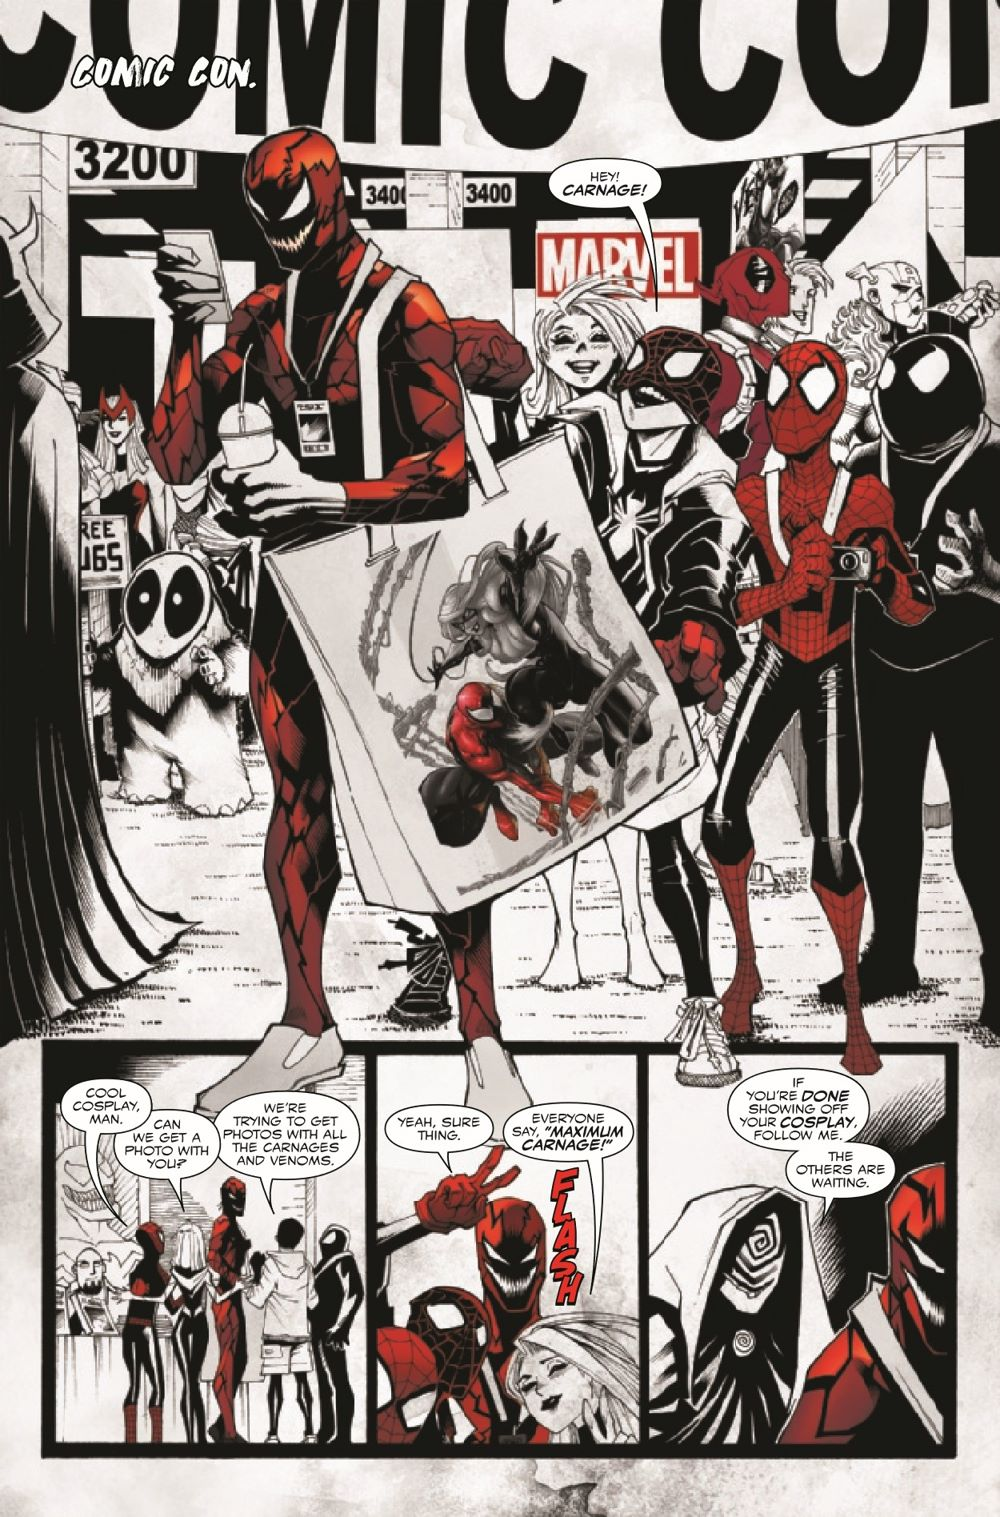 CARNBLKWHBL2021003_Preview-6 ComicList Previews: CARNAGE BLACK WHITE AND BLOOD #3 (OF 4)